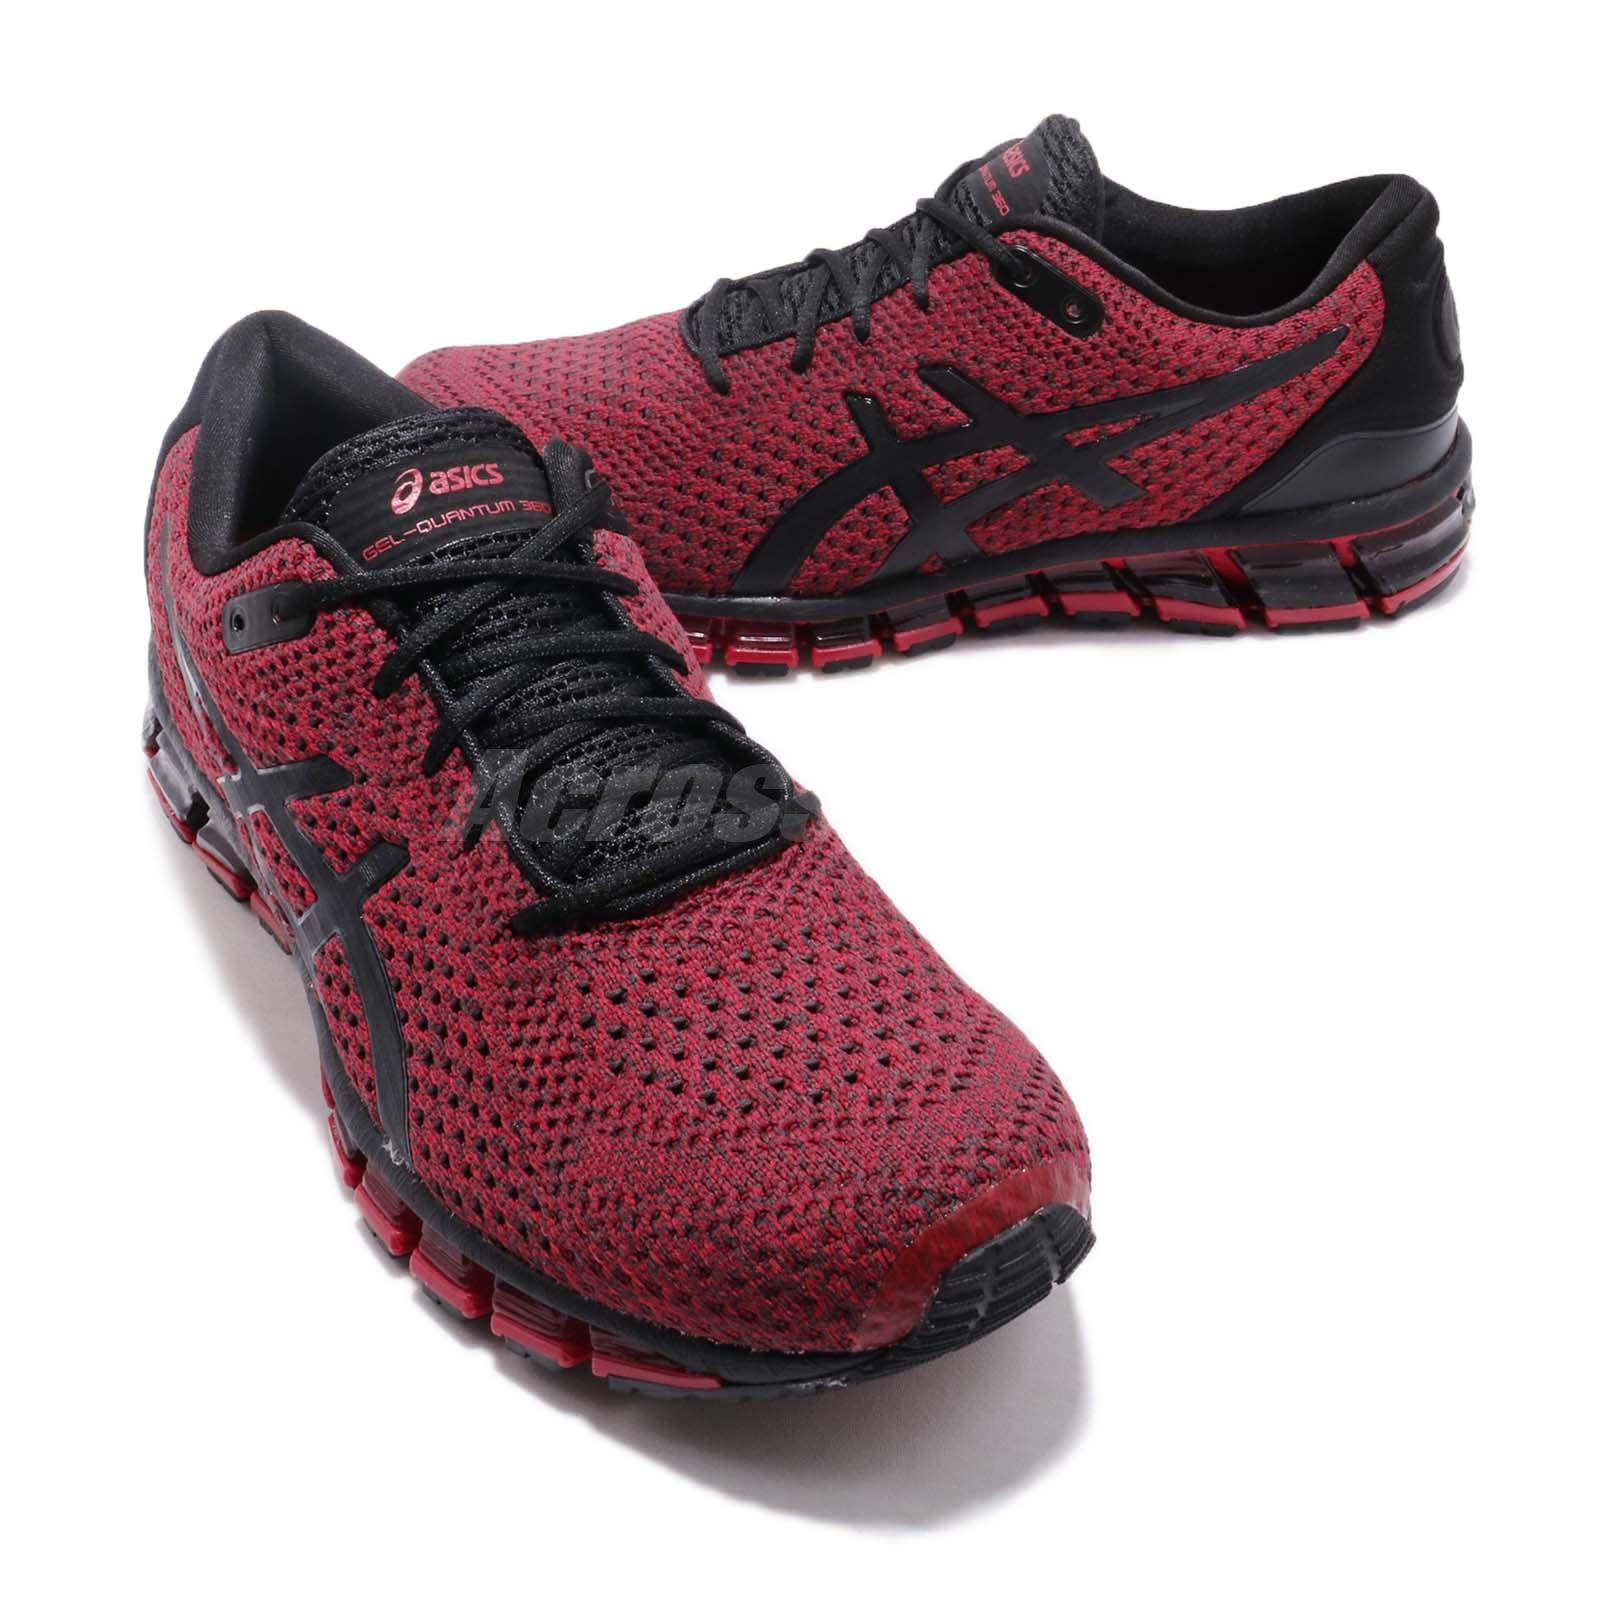 detailed look 95f74 621be Details about Asics Gel-Quantum 360 Knit 2 Black Samba Red Men Running  Shoes Sneaker T8G3N-001